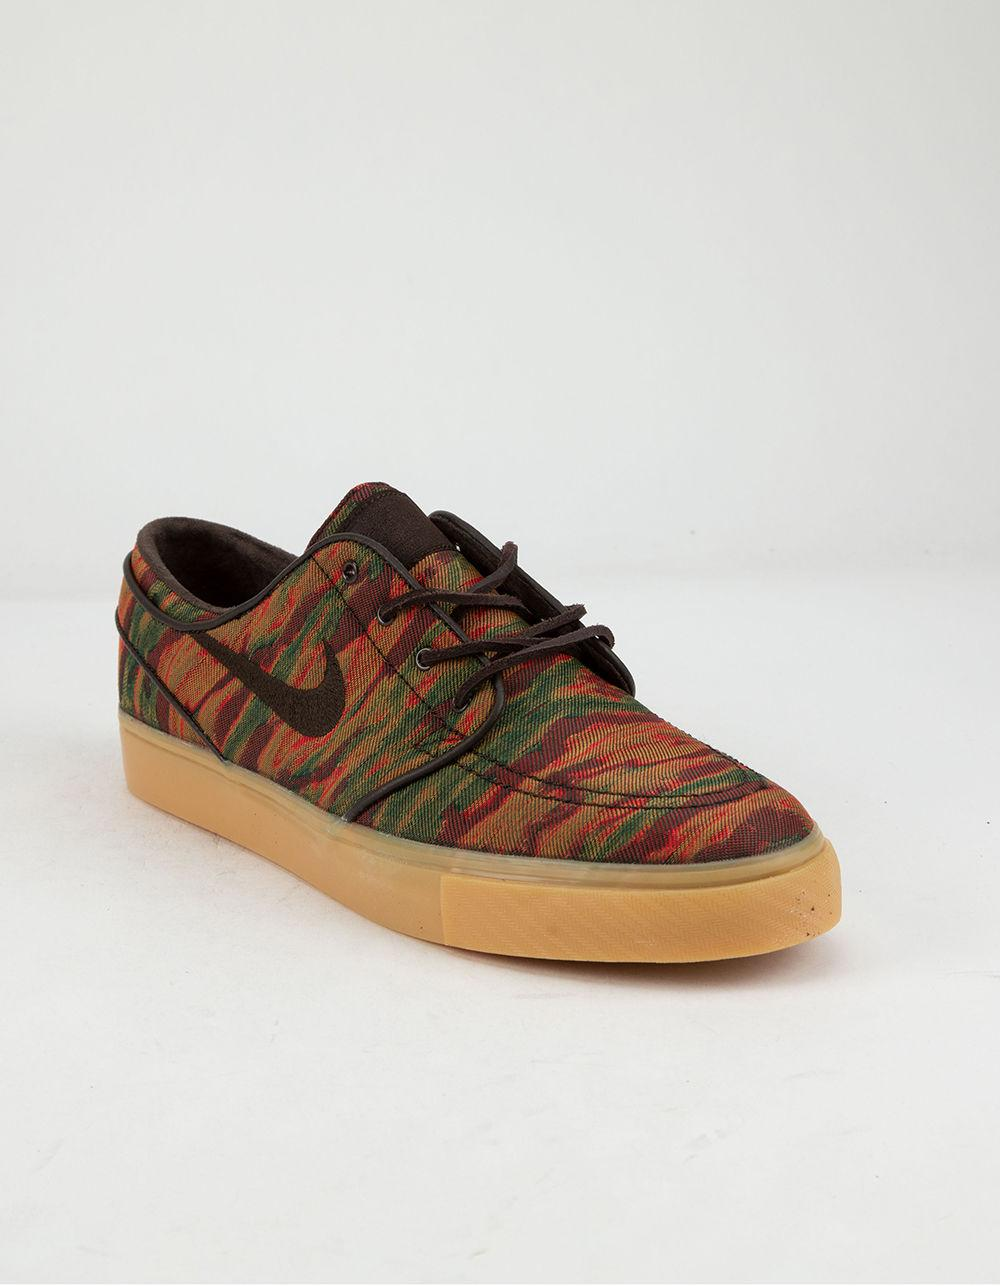 new arrival 16547 a84d1 Lyst - Nike Zoom Stefan Janoski Canvas Premium Gum Yellow   Velvet Brown  Shoes in Brown for Men